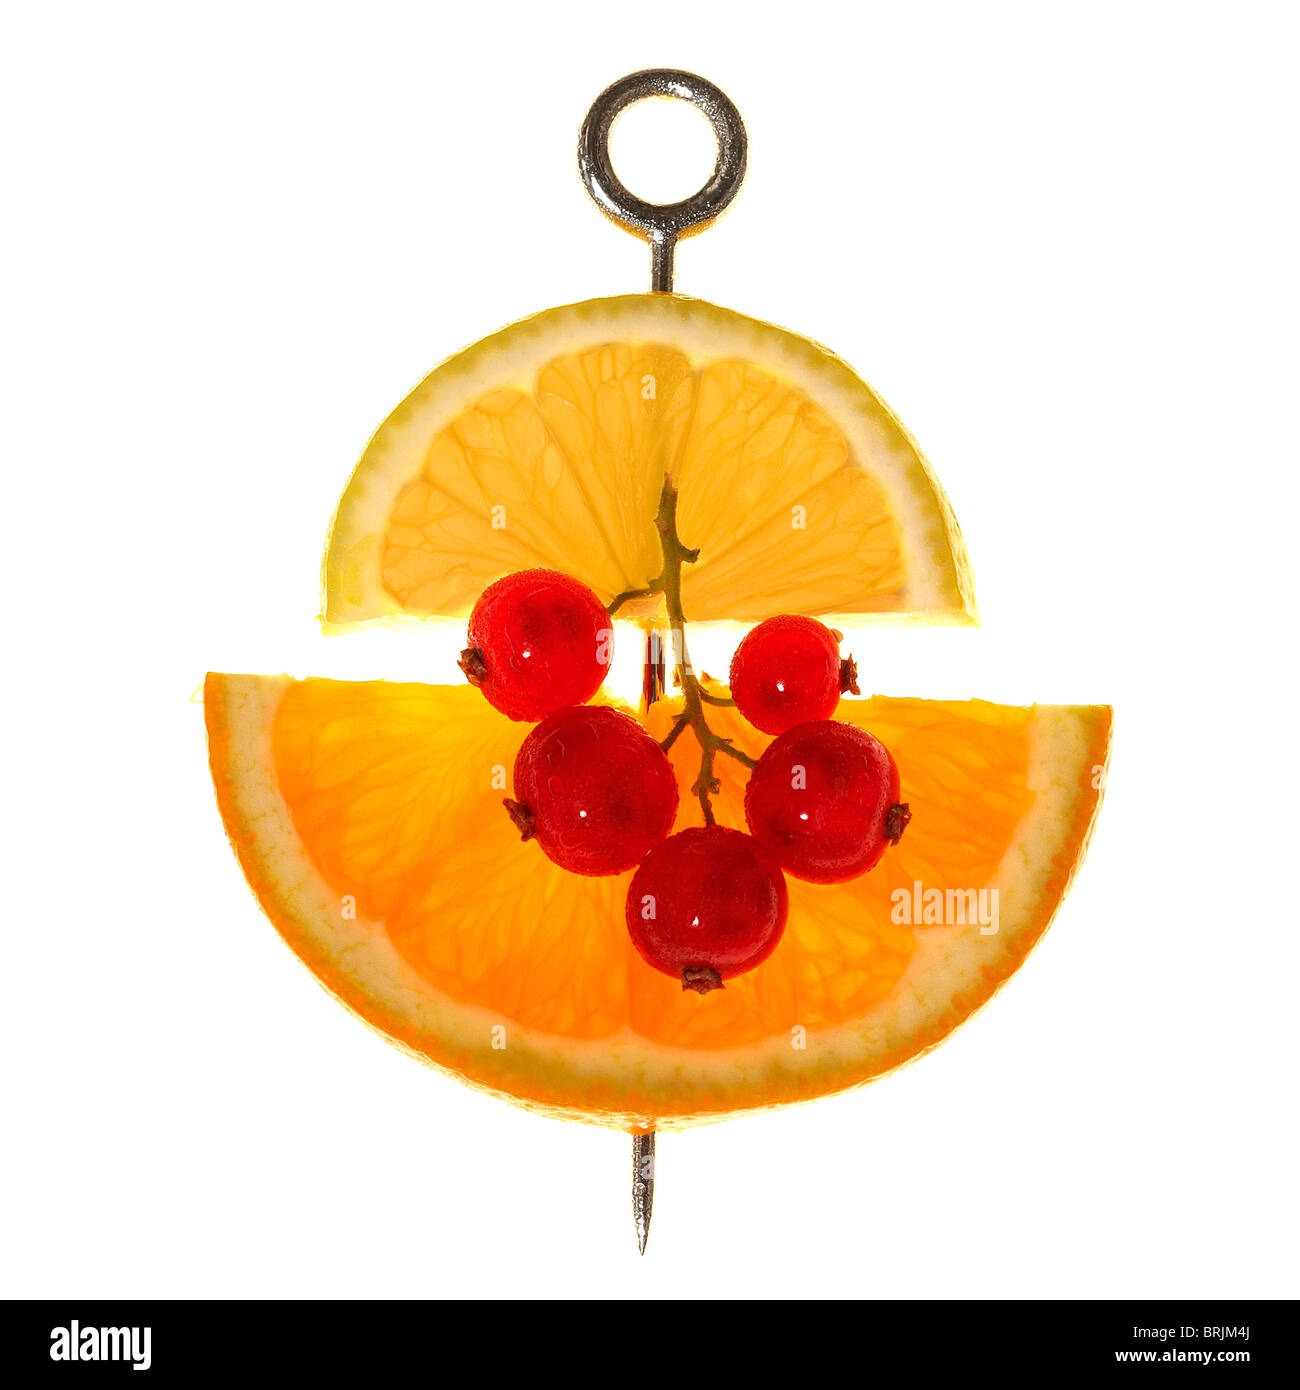 Orange, lemon, and red currants on skewer - Stock Image